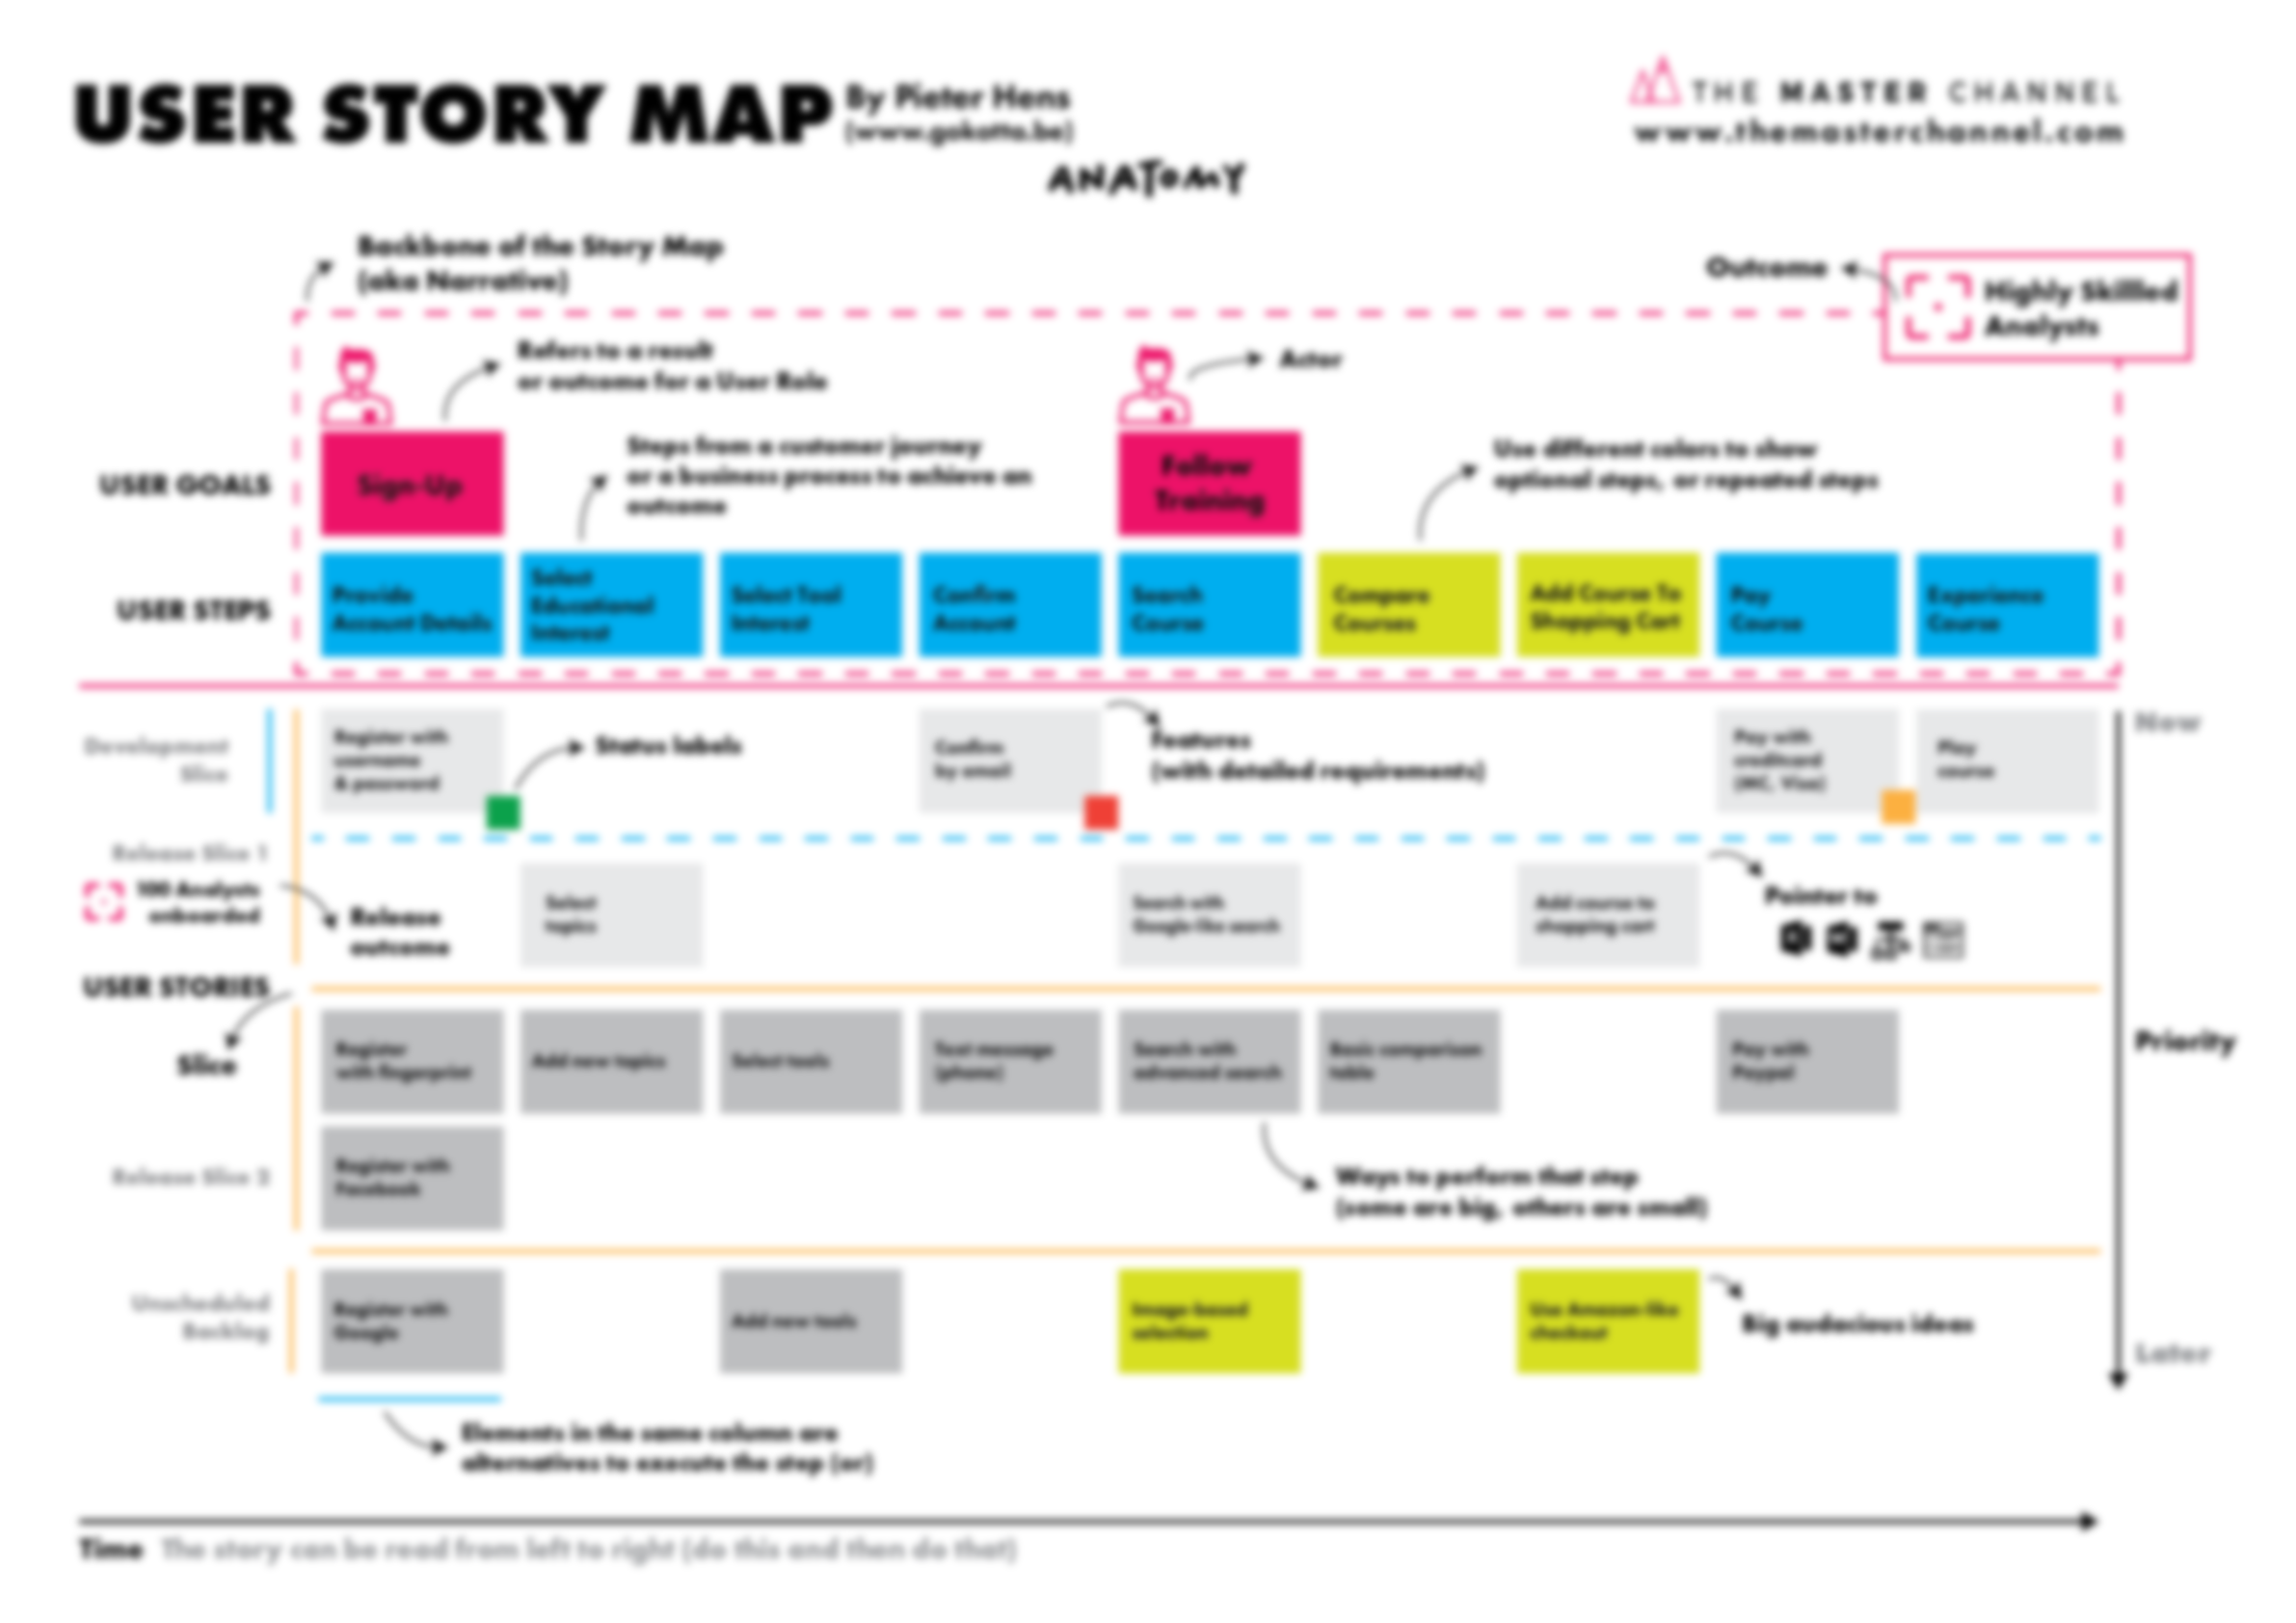 User Story Map Anatomy Blurred poster